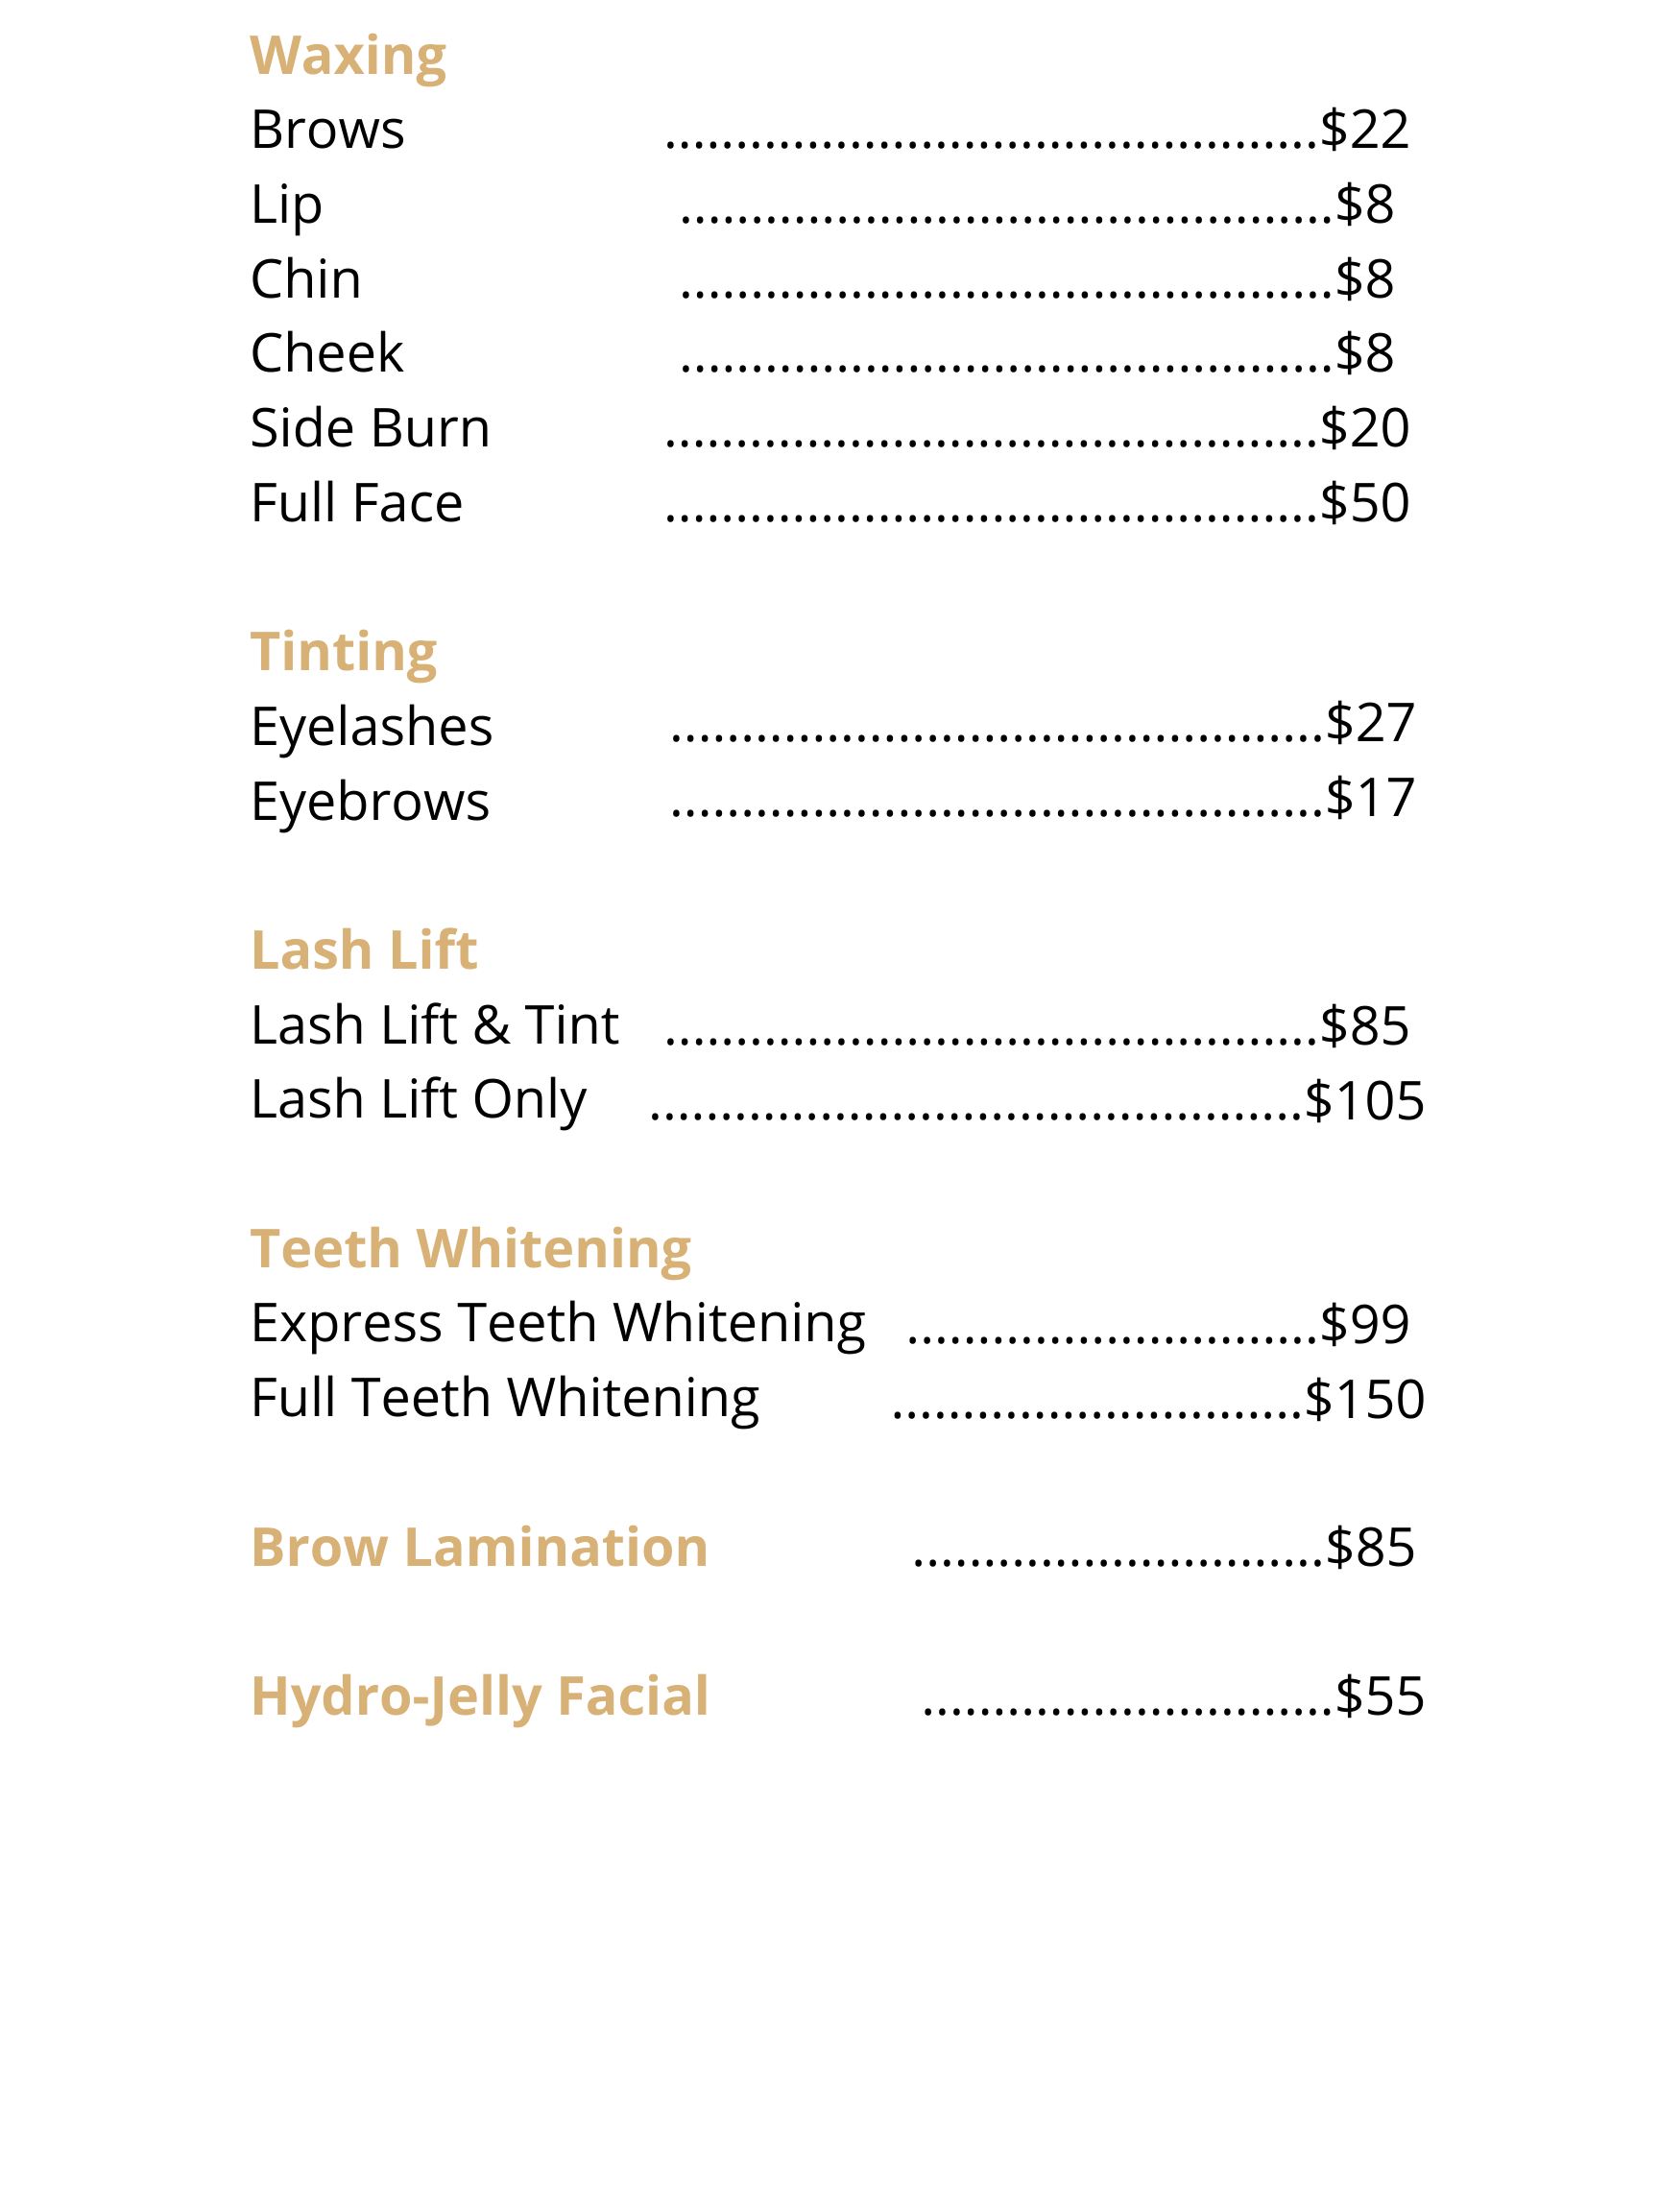 spa and beauty services. Brow lamination, brow waxing, tinting, lash tint, brow tint, teeth whitening, eyelash extensions, lashes, lash extensions, volume, hybrid, classic, relax